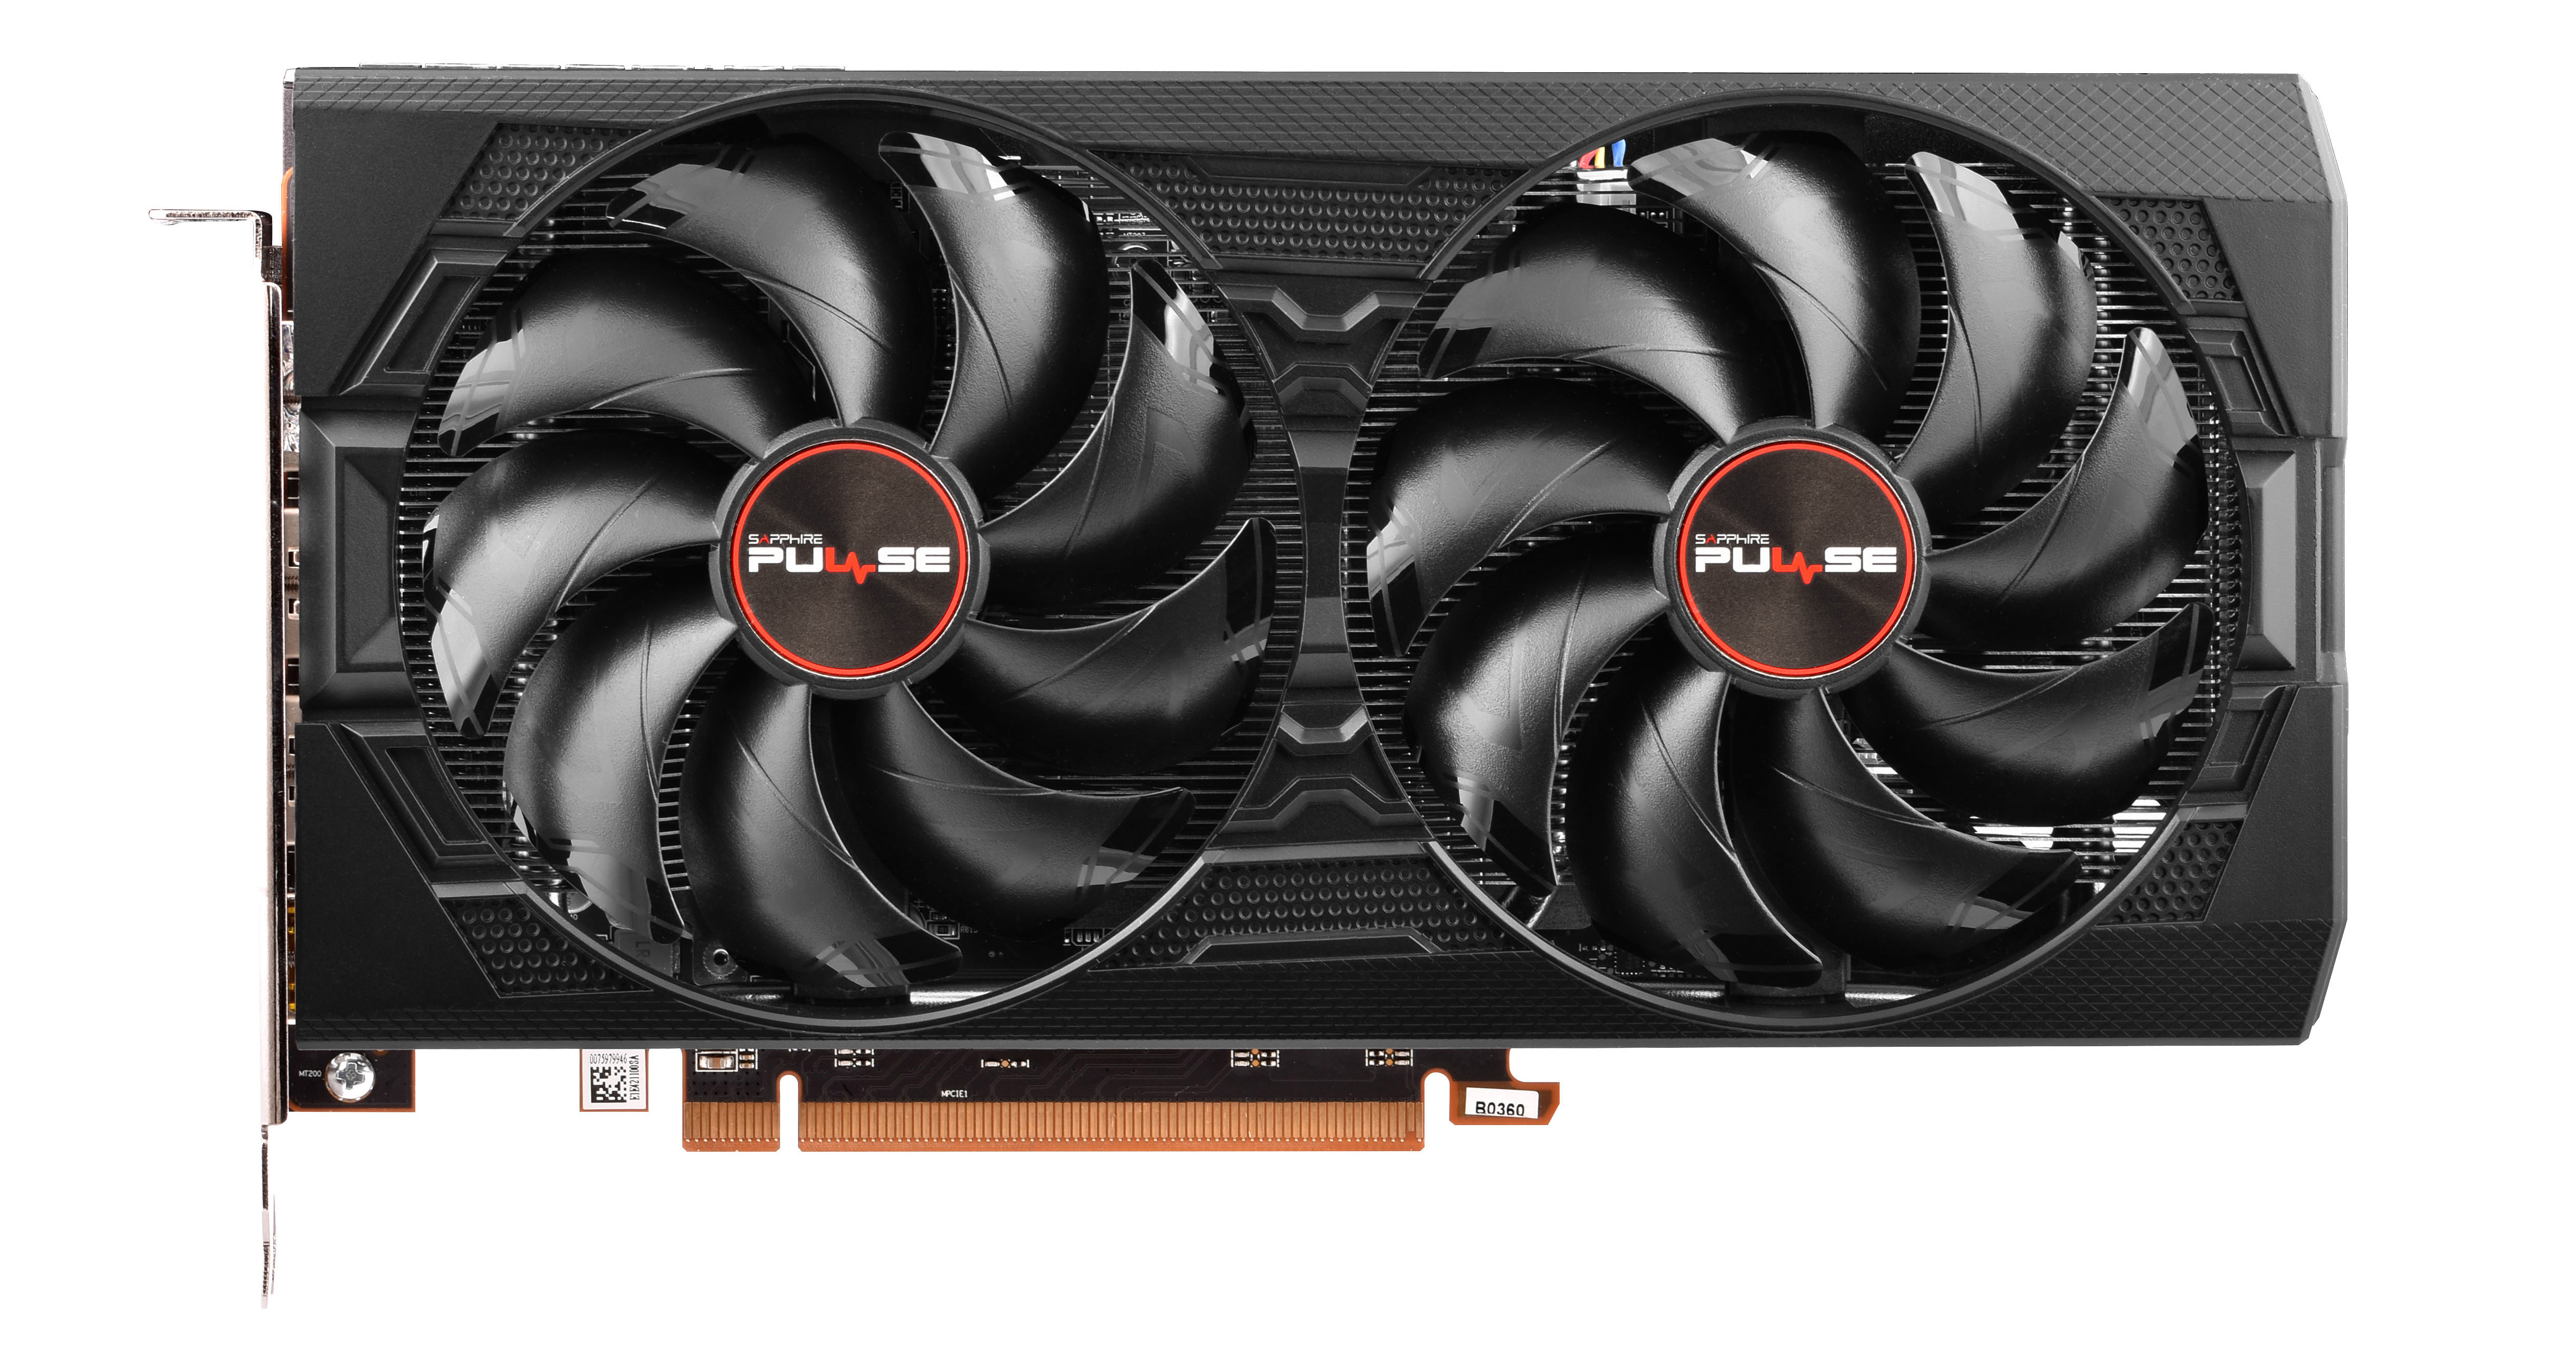 Image result for Sapphire Pulse Radeon RX 5500 XT (1080p)